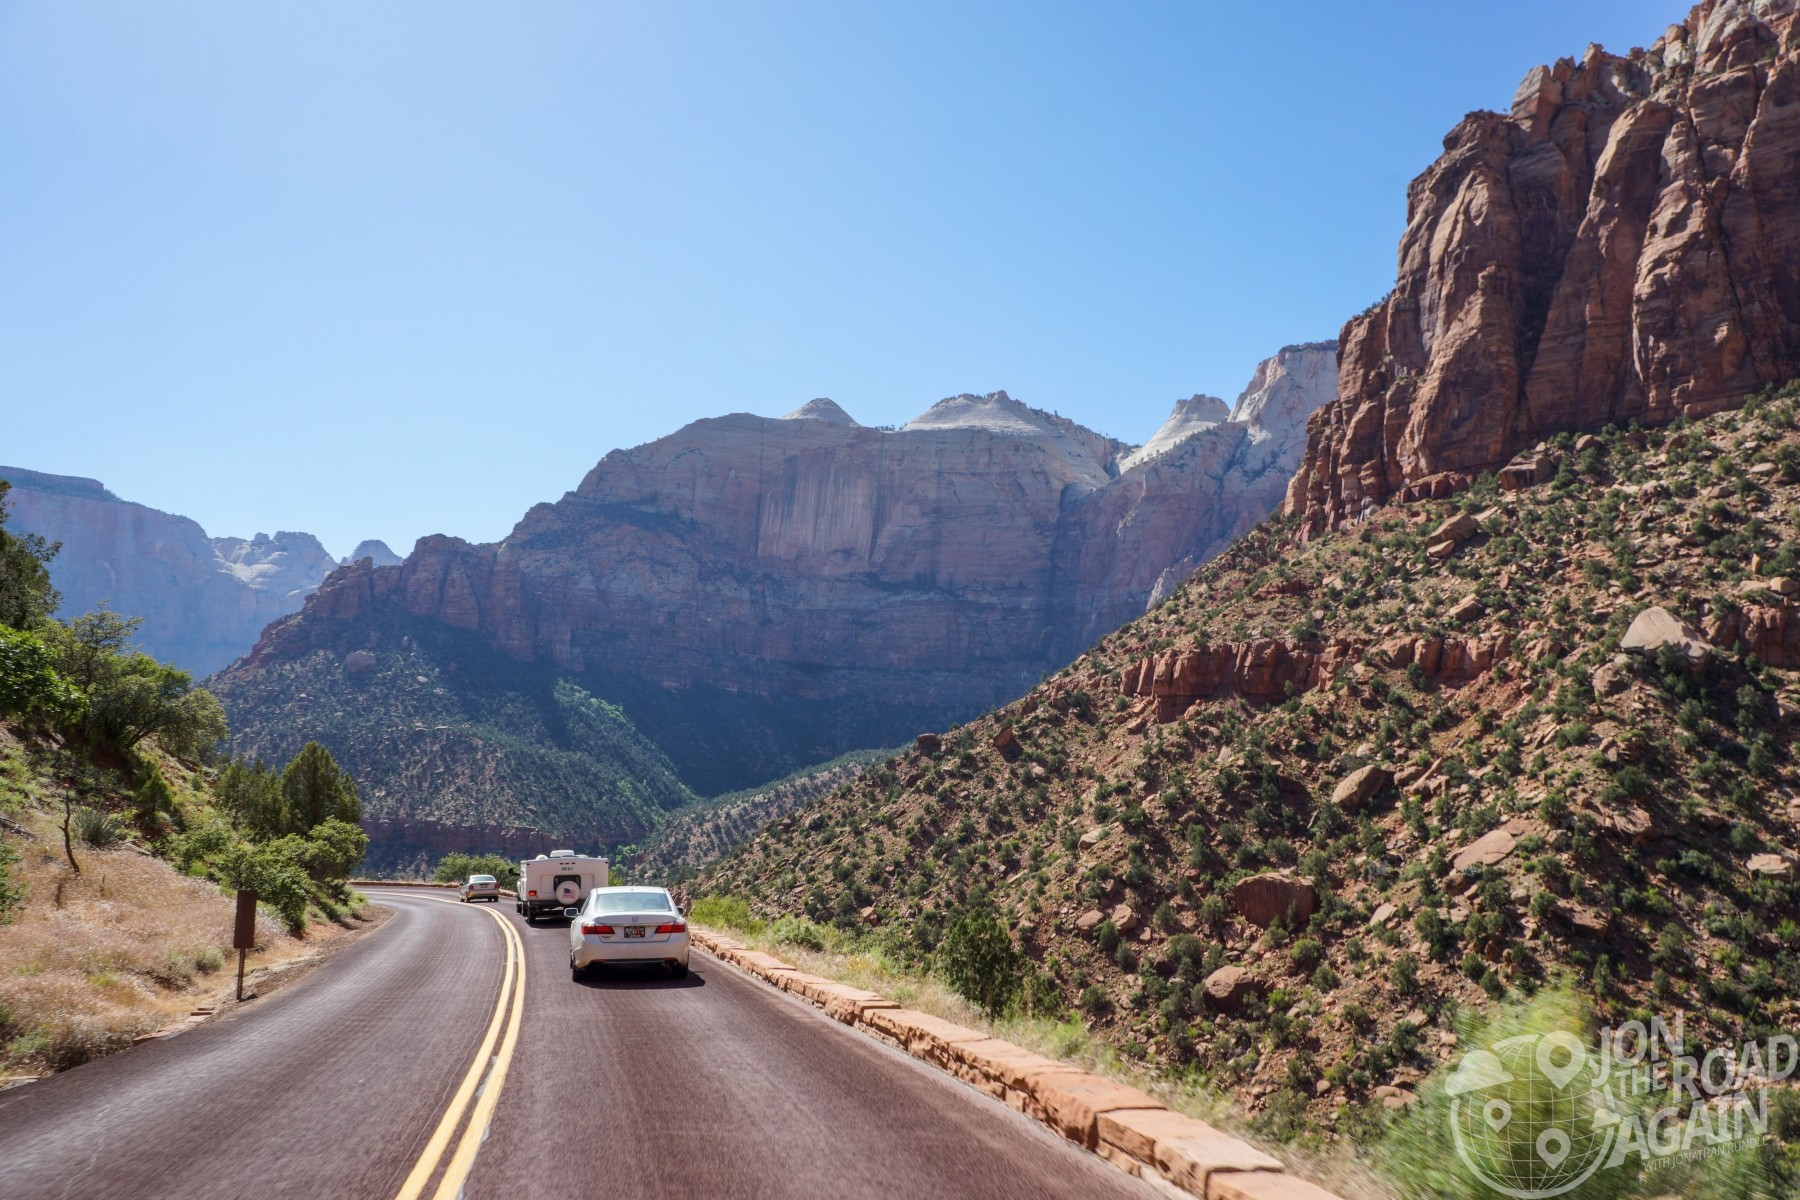 Riding into Zion National Park